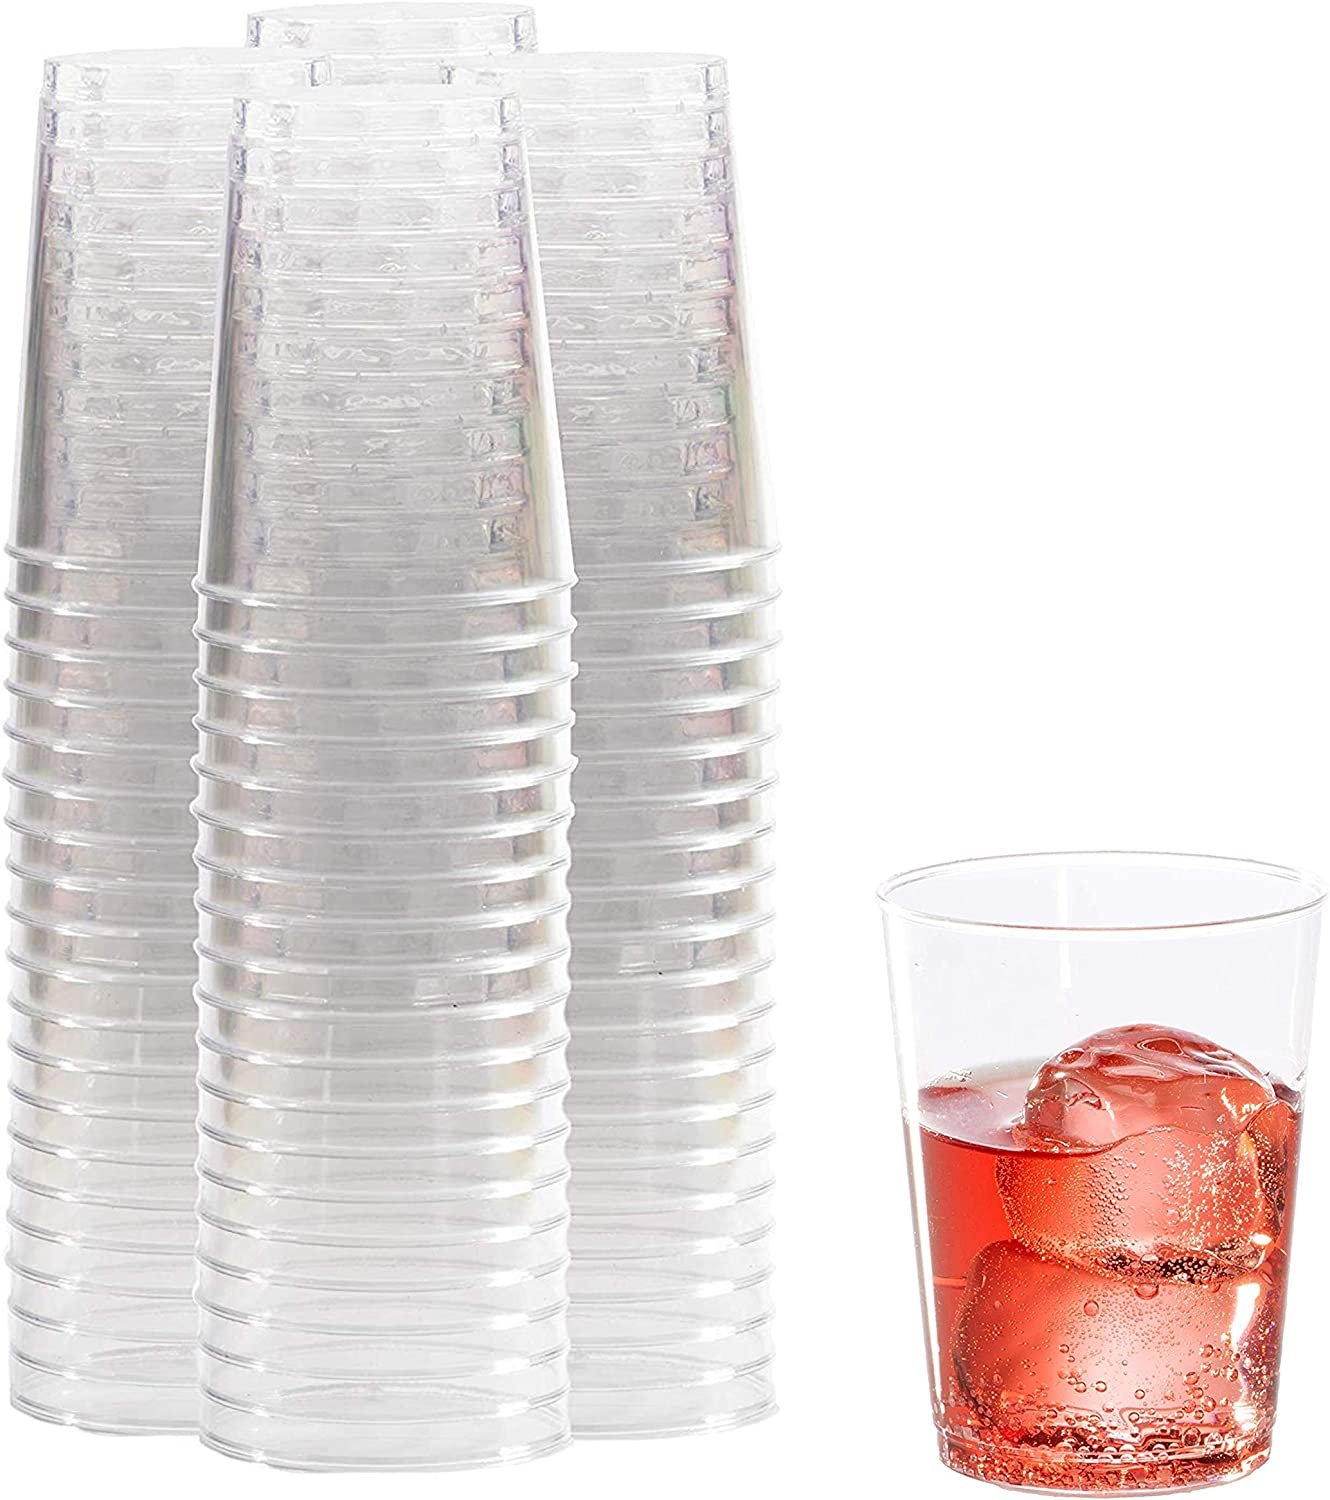 10 oz Clear Plastic Cups 100 67% OFF of fixed price Nippon regular agency Party C Pack Tumbler Disposable